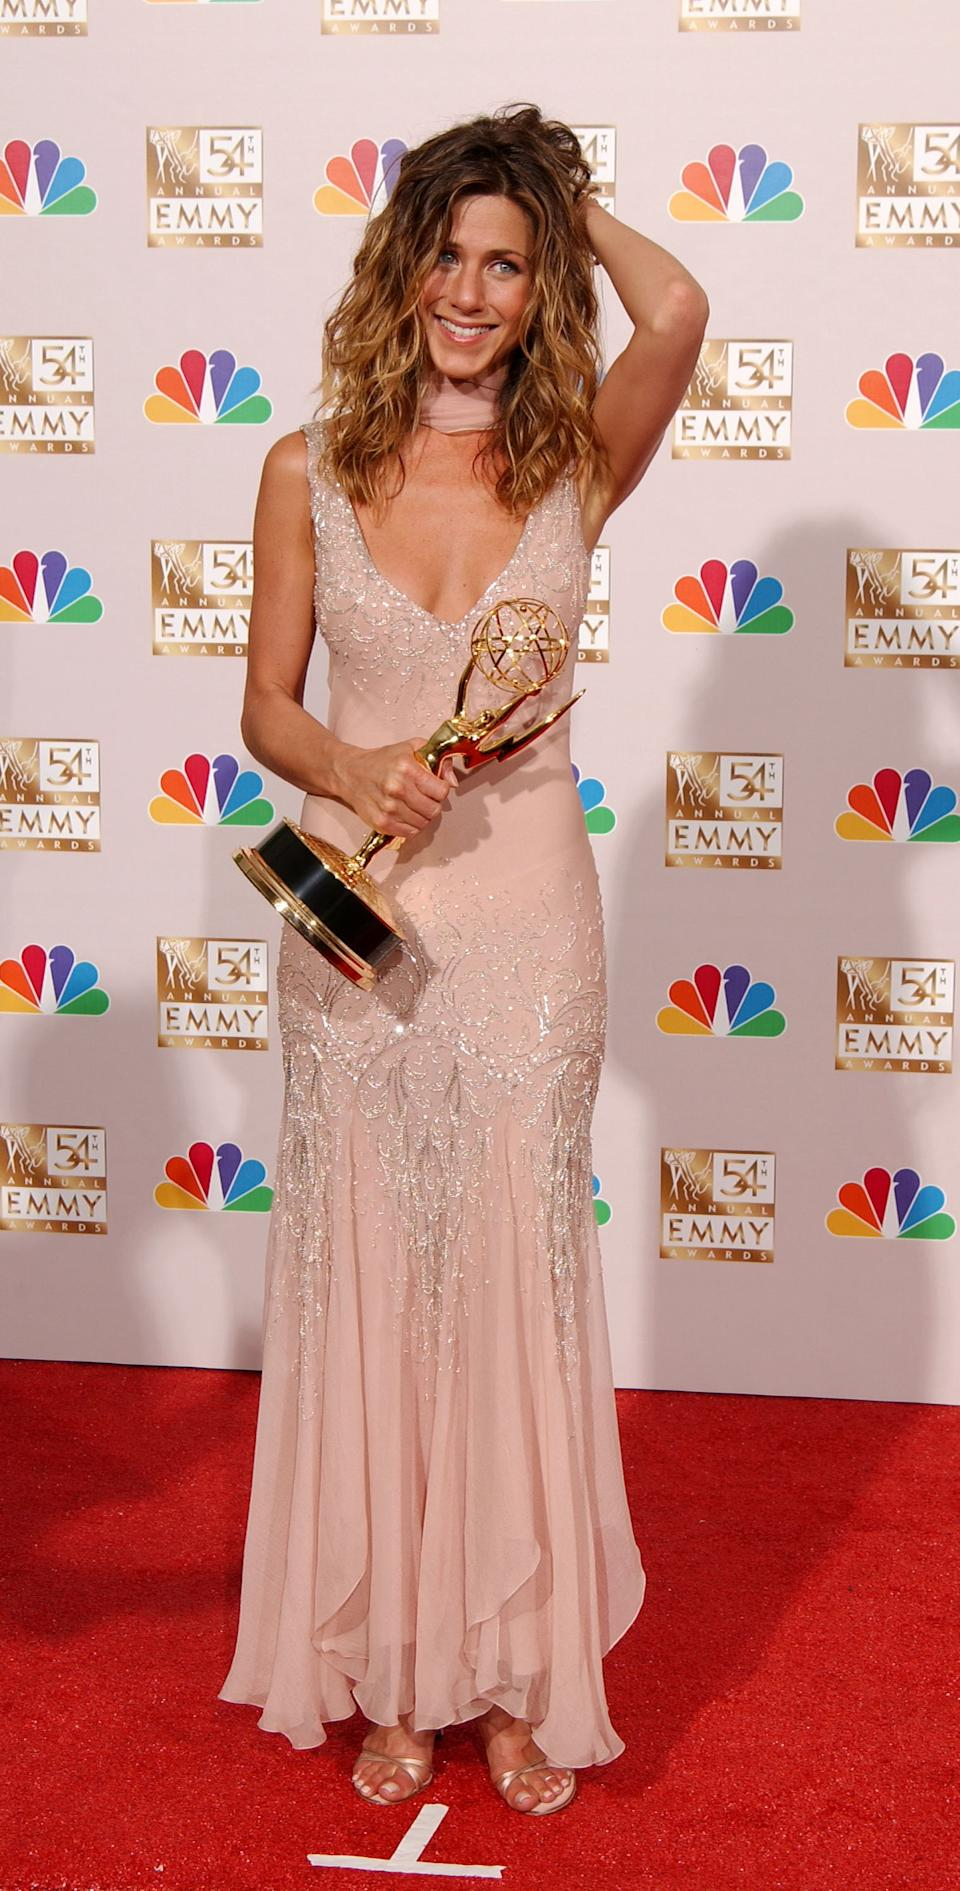 """Aniston accepted the award for """"Lead Actress in a Comedy Series"""" at the 2002 Emmy Awards wearing a blush Christian Dior gown. (Photo by Robert Mora/Getty Images)"""